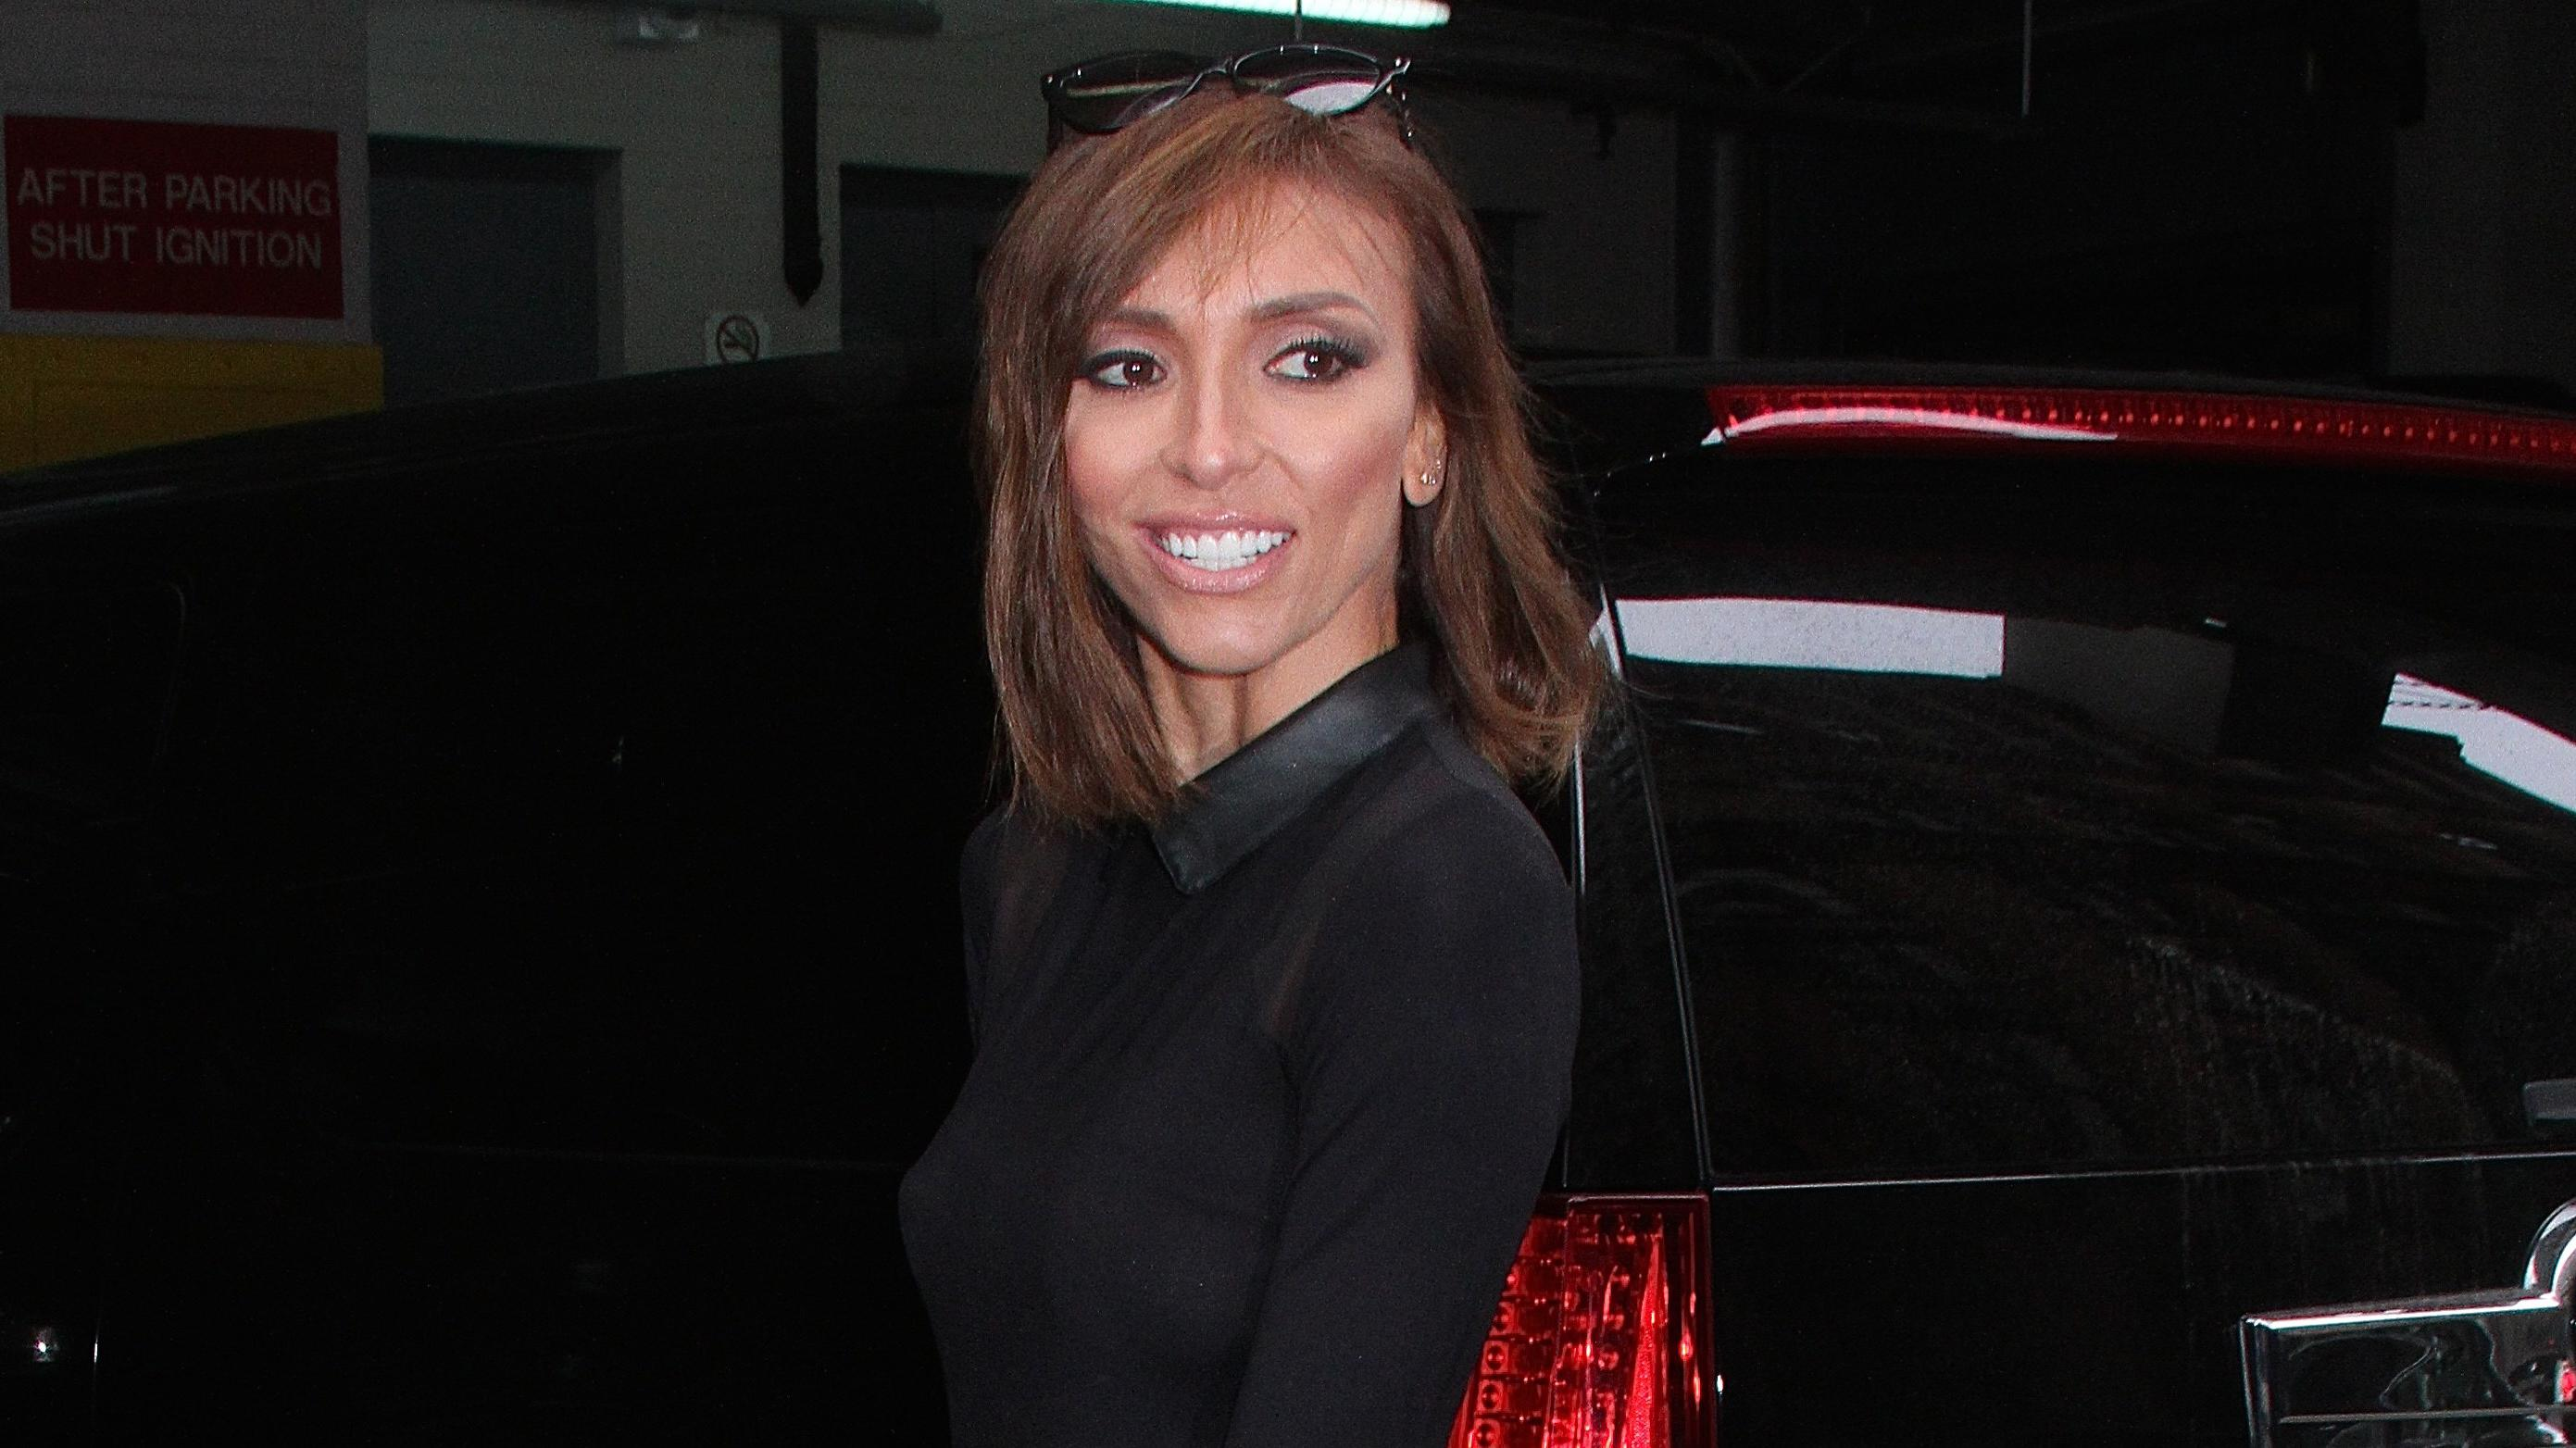 Media personality Giuliana Rancic arrives at 'HuffPost Live' in NYC's East Village